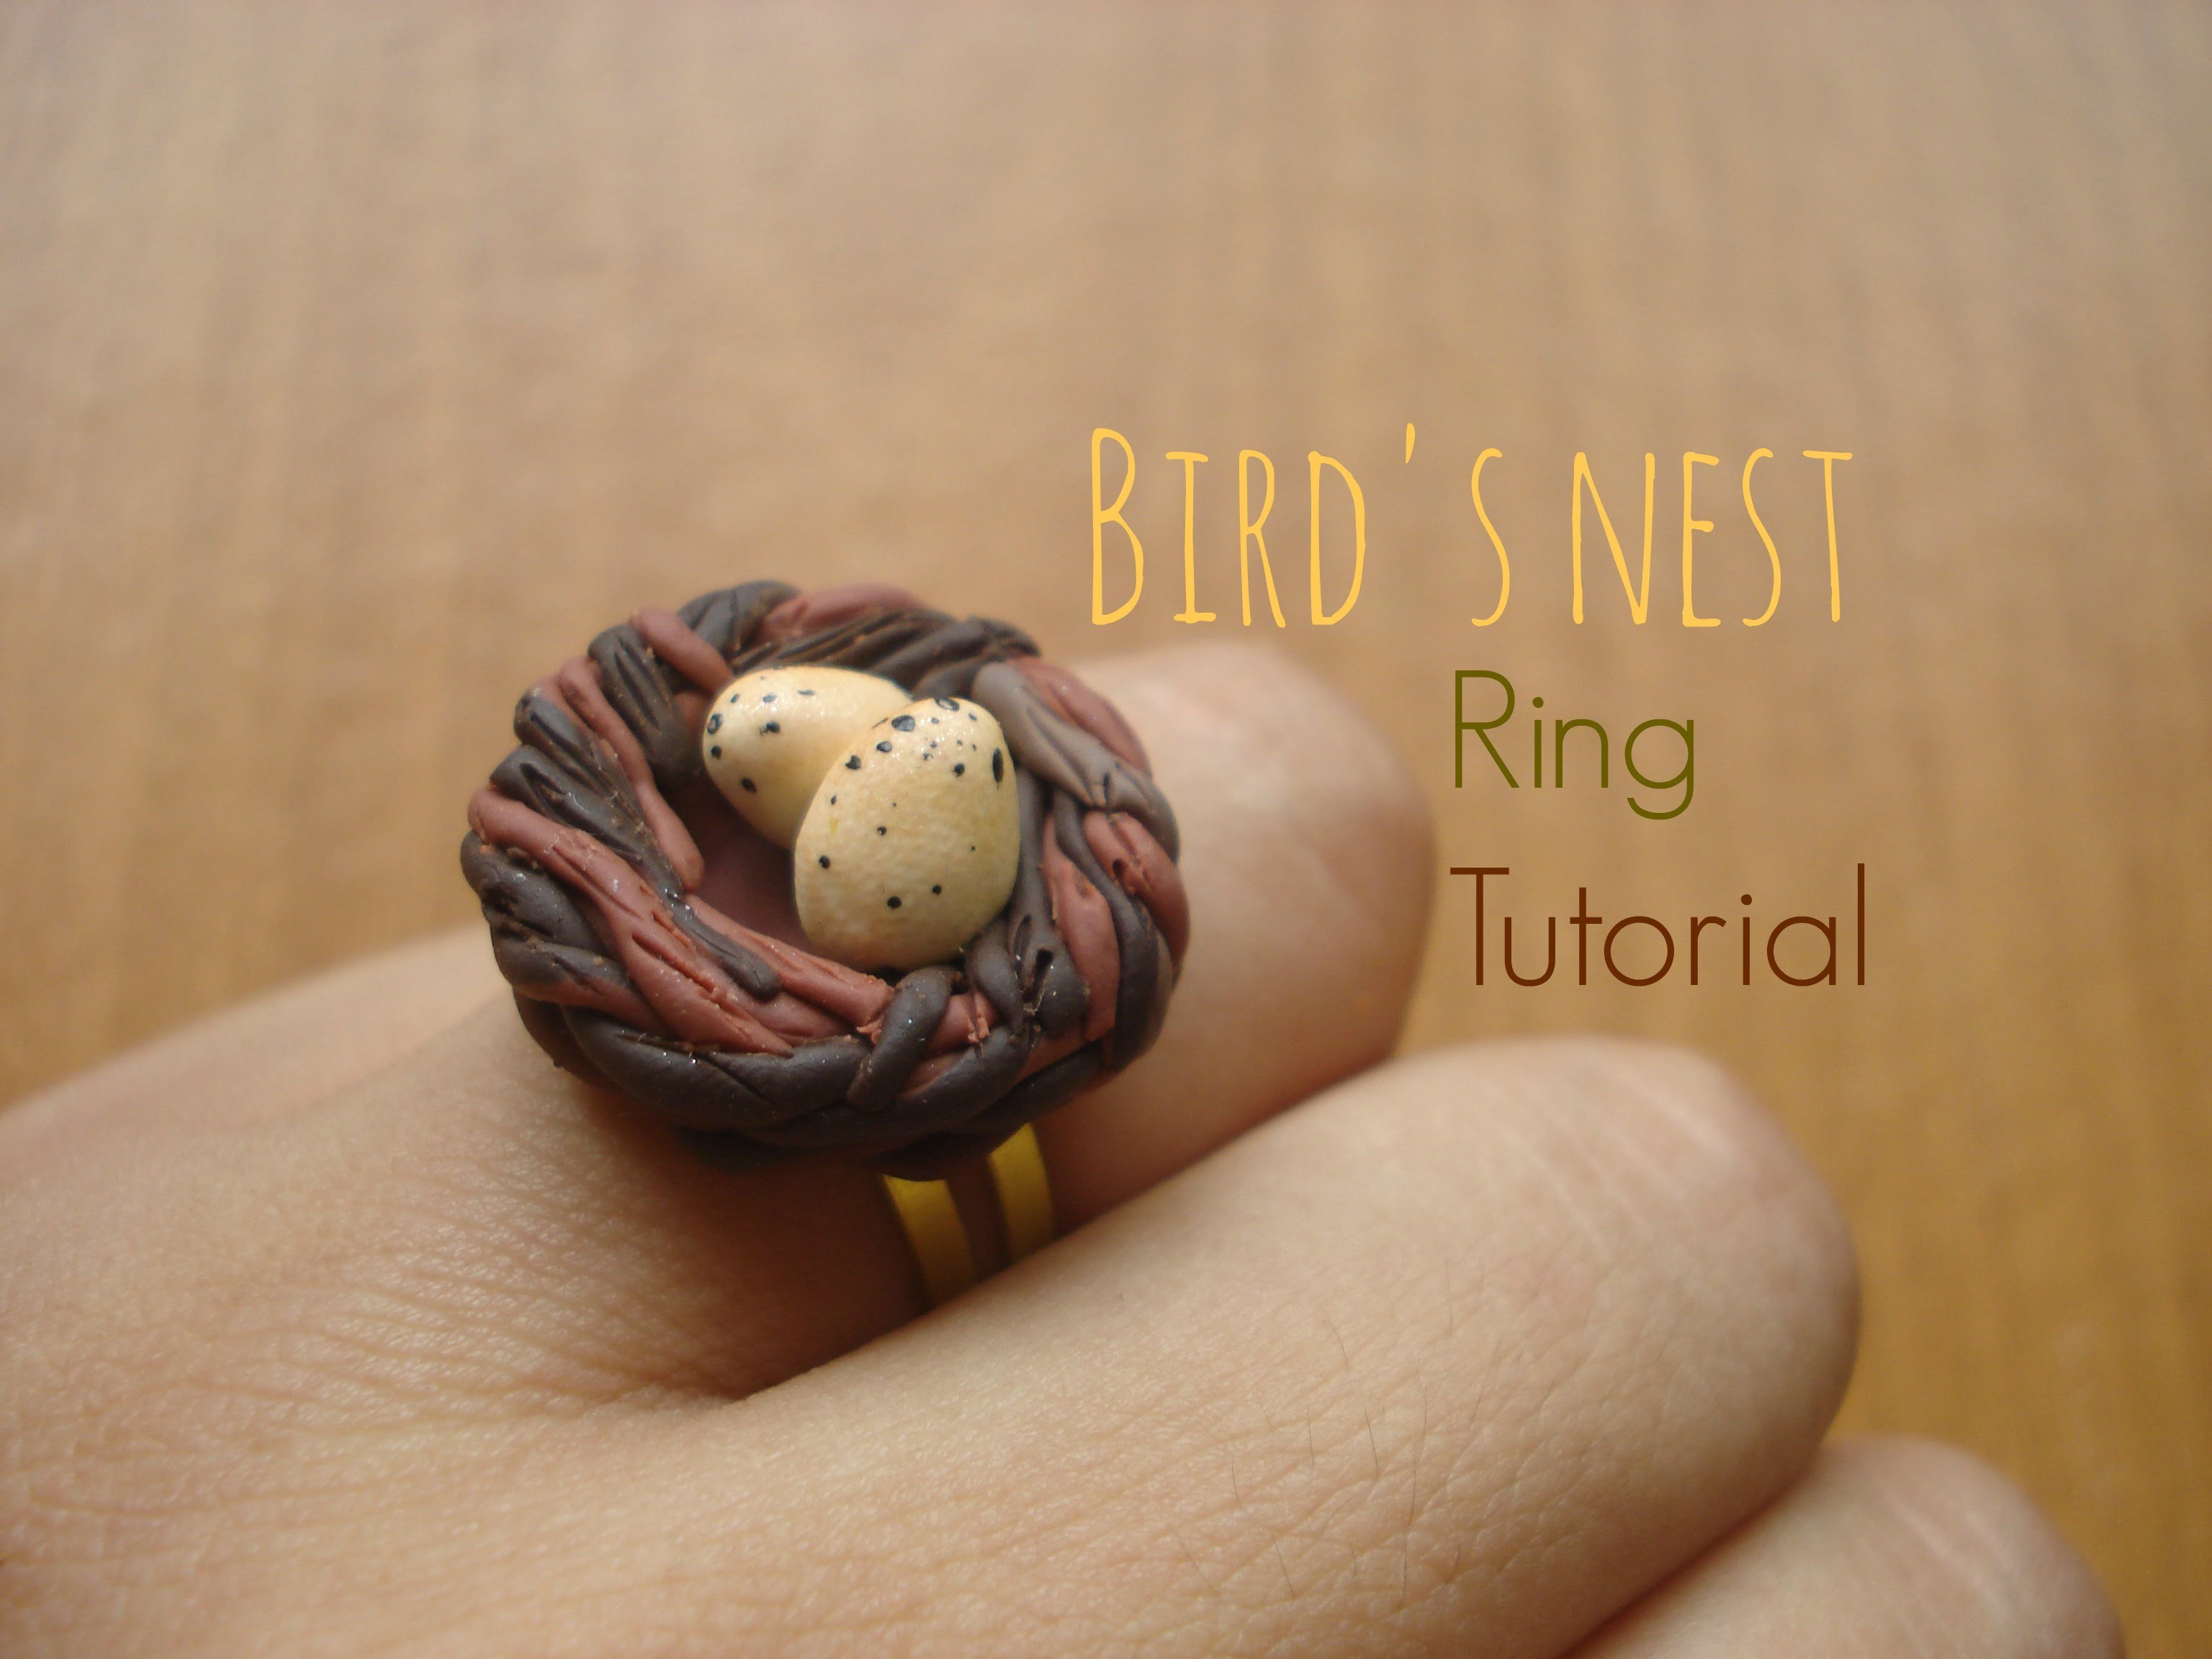 Bird's nest ring tutorial - polymer clay